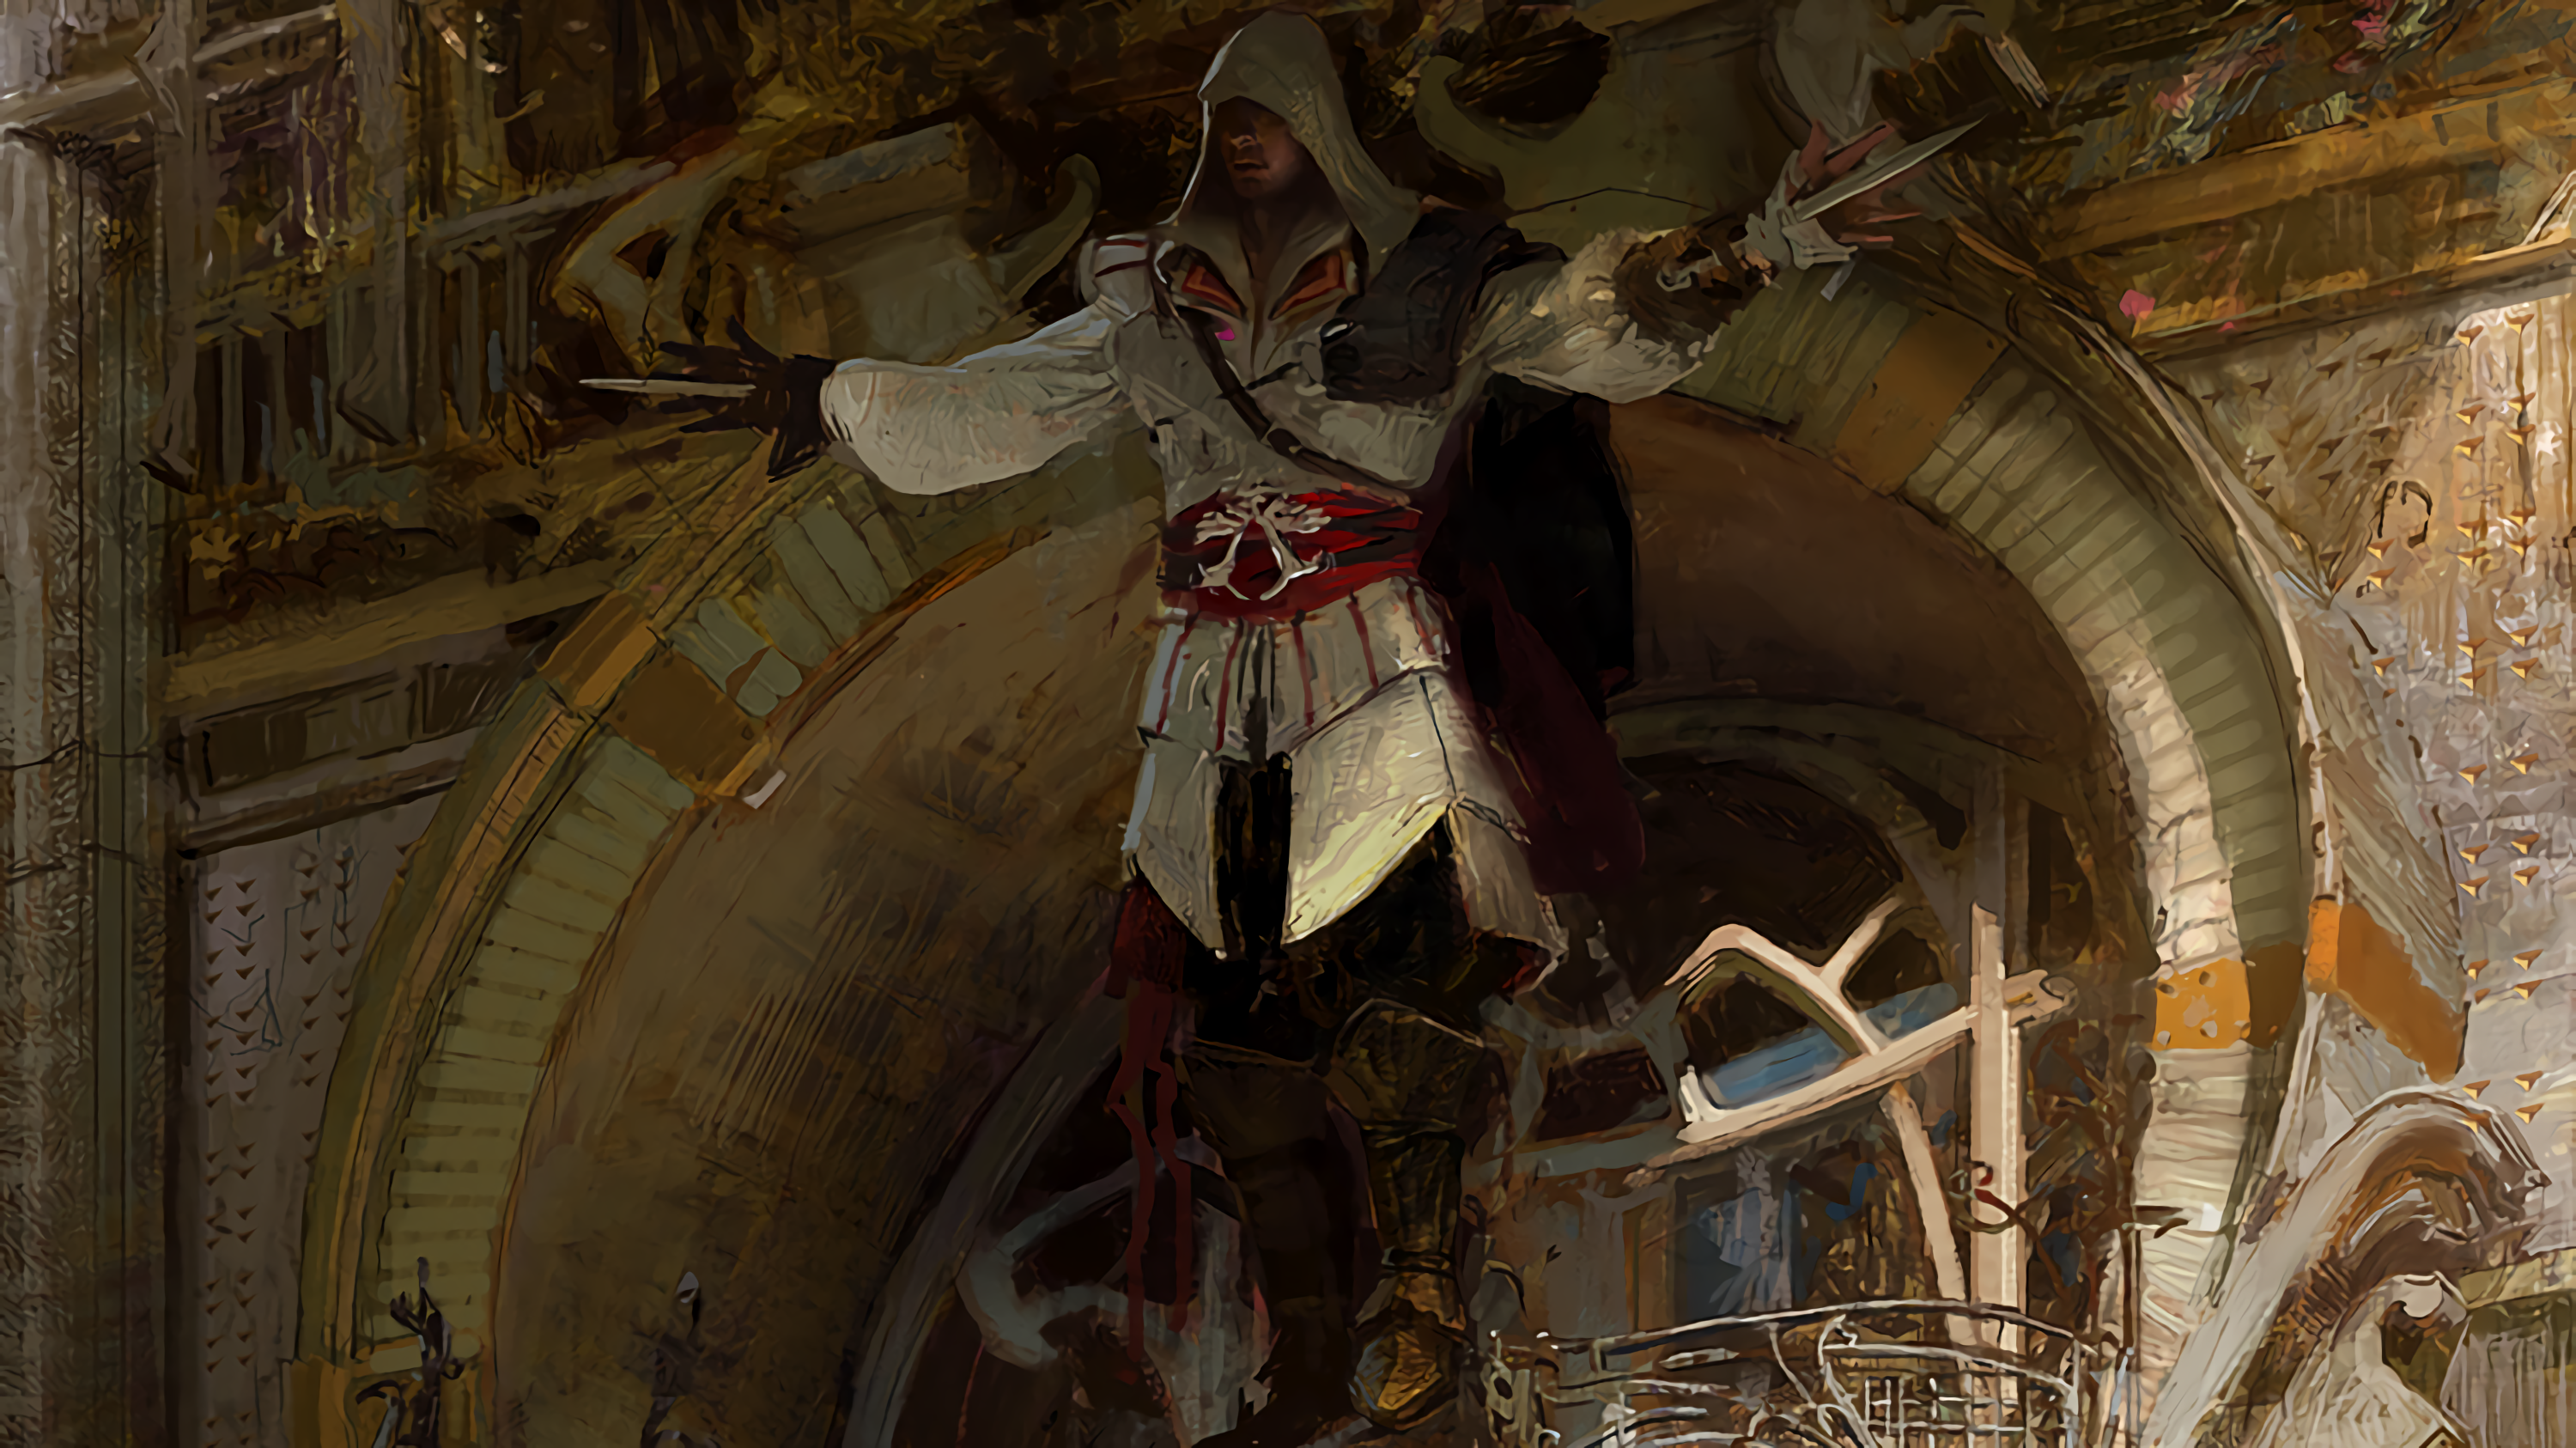 temple Assassinu0027s Creed Ezio Auditore da Firenze Assassinu0027s Creed  Brotherhood ancient history middle ages - Middle Ages PNG HD